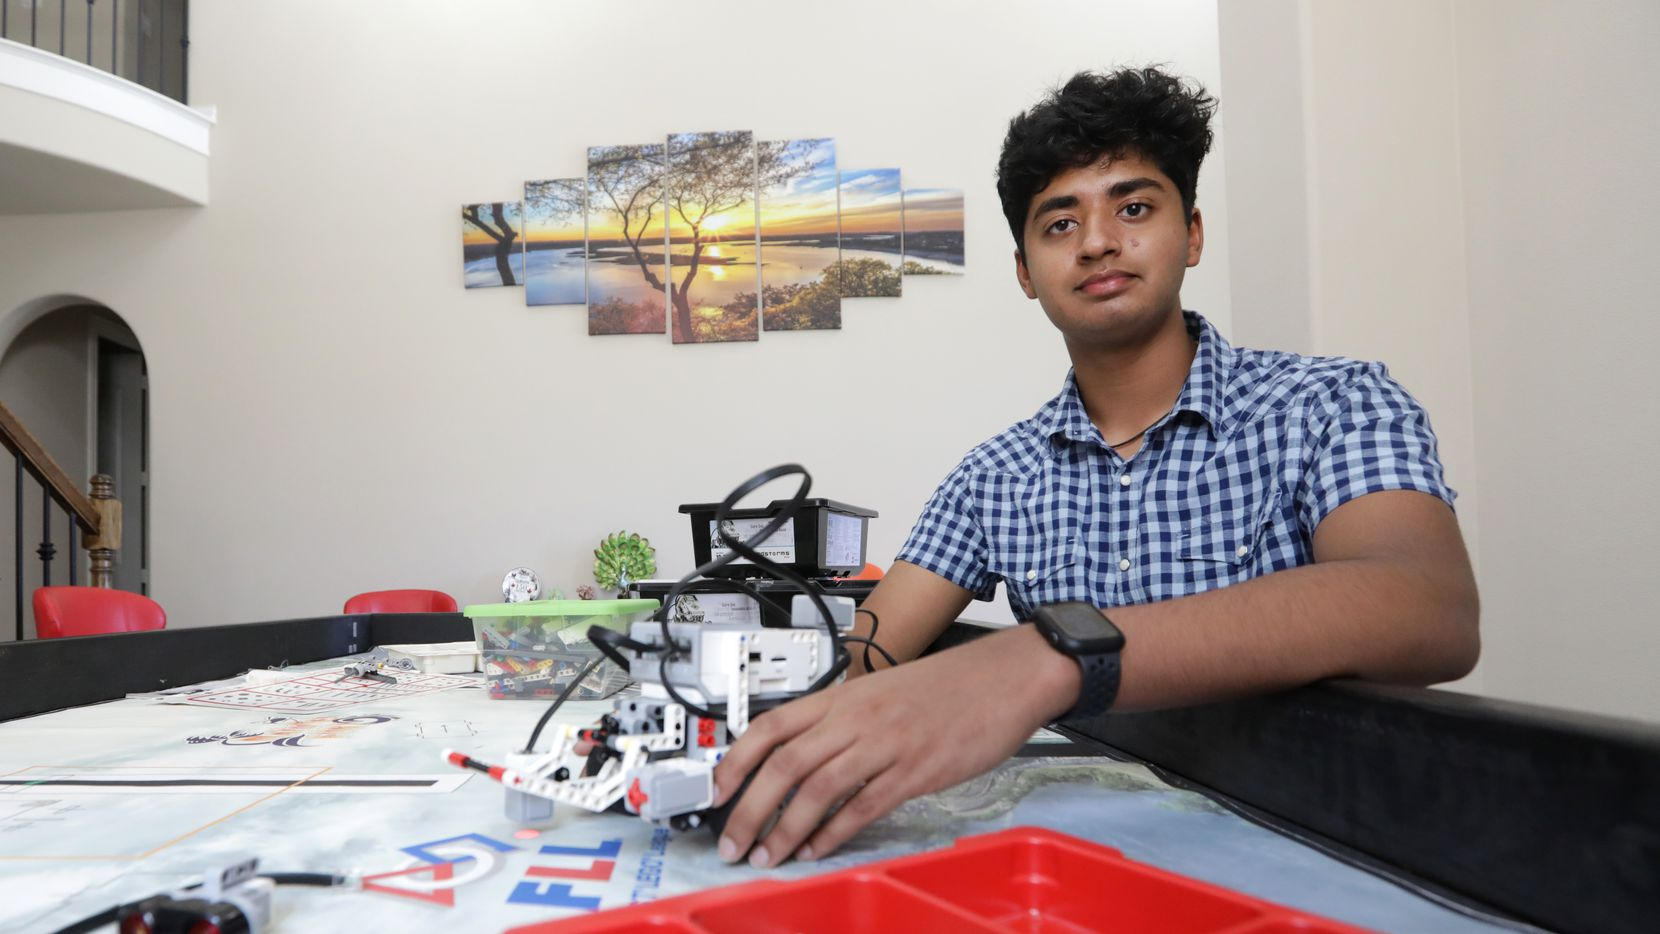 Mihit Sai Garlanka, 17, founded the nonprofit Kids Within the Reach, which offers STEM-related camps and raises money and awareness to fight child hunger.